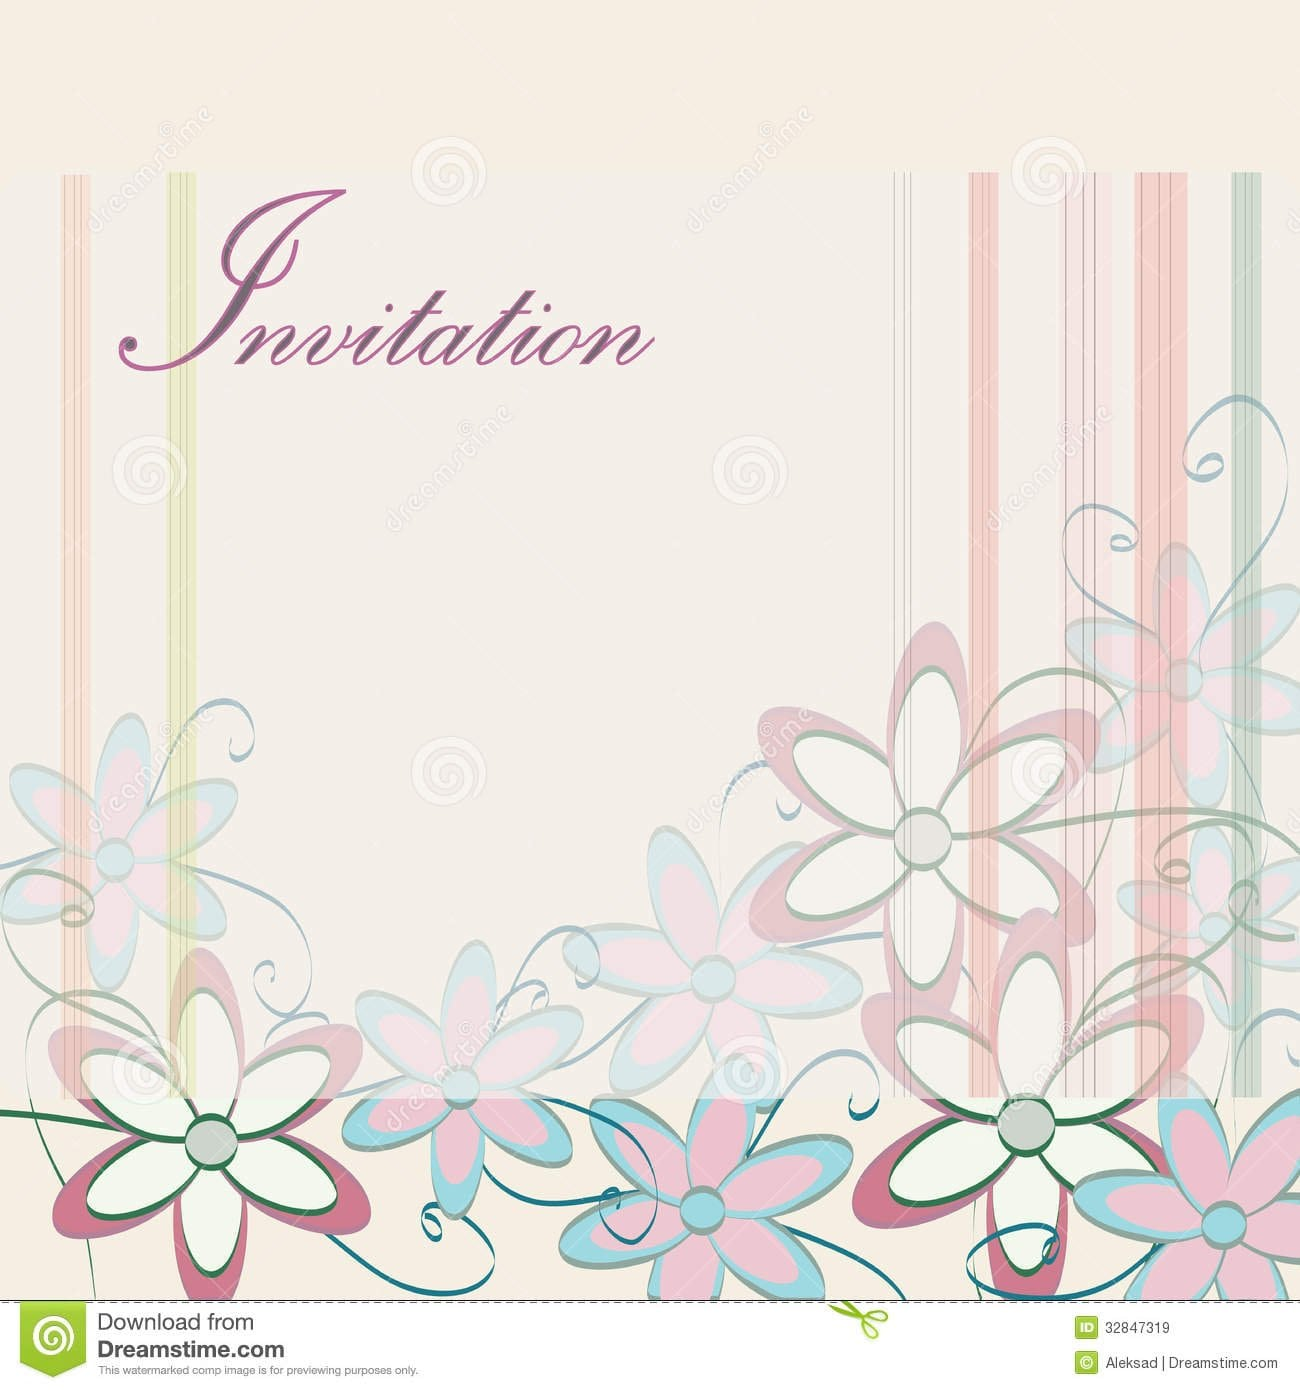 Invitation Card Design Template - Wedding invitation card design template free download